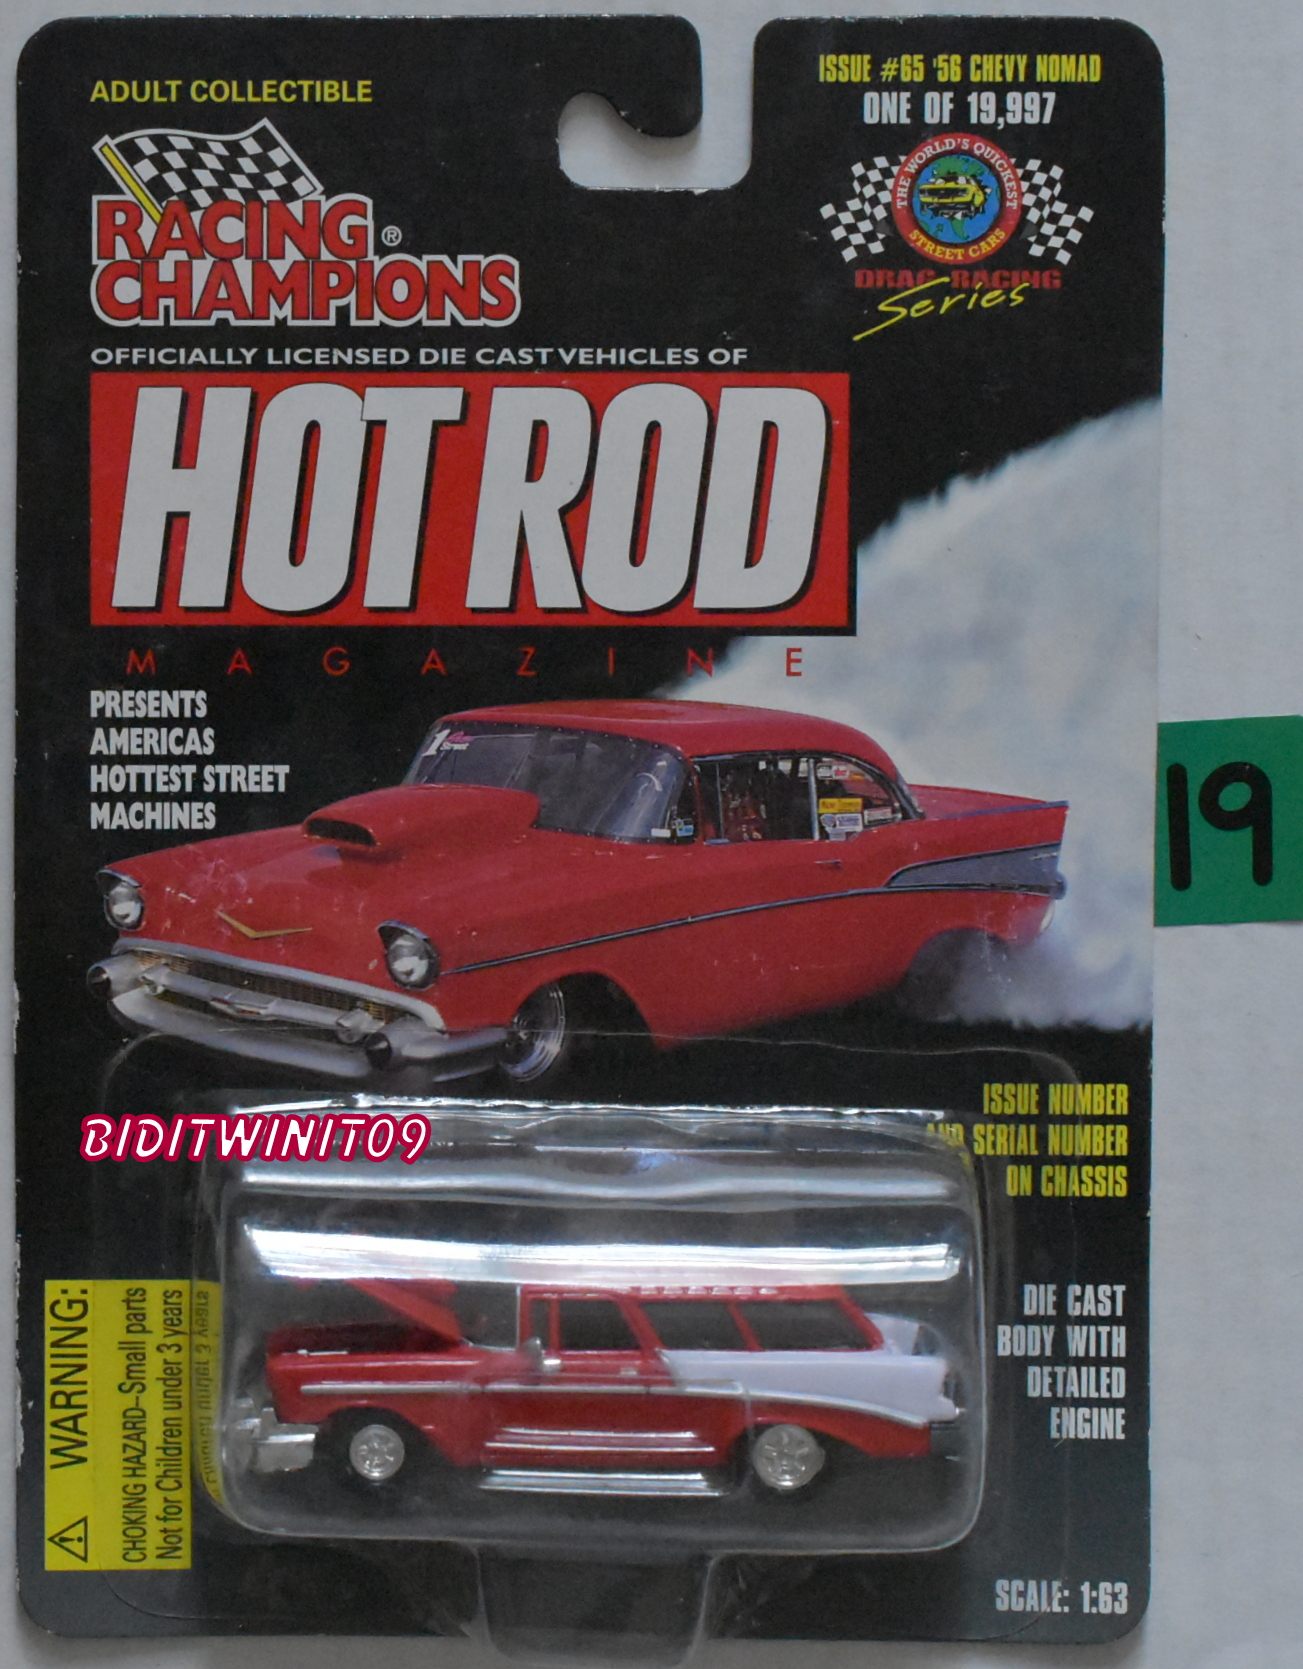 RACING CHAMPIONS HOT ROD MAGAZINE ISSUE #65 '56 CHEVY NOMAD 1:63 SCALE E+